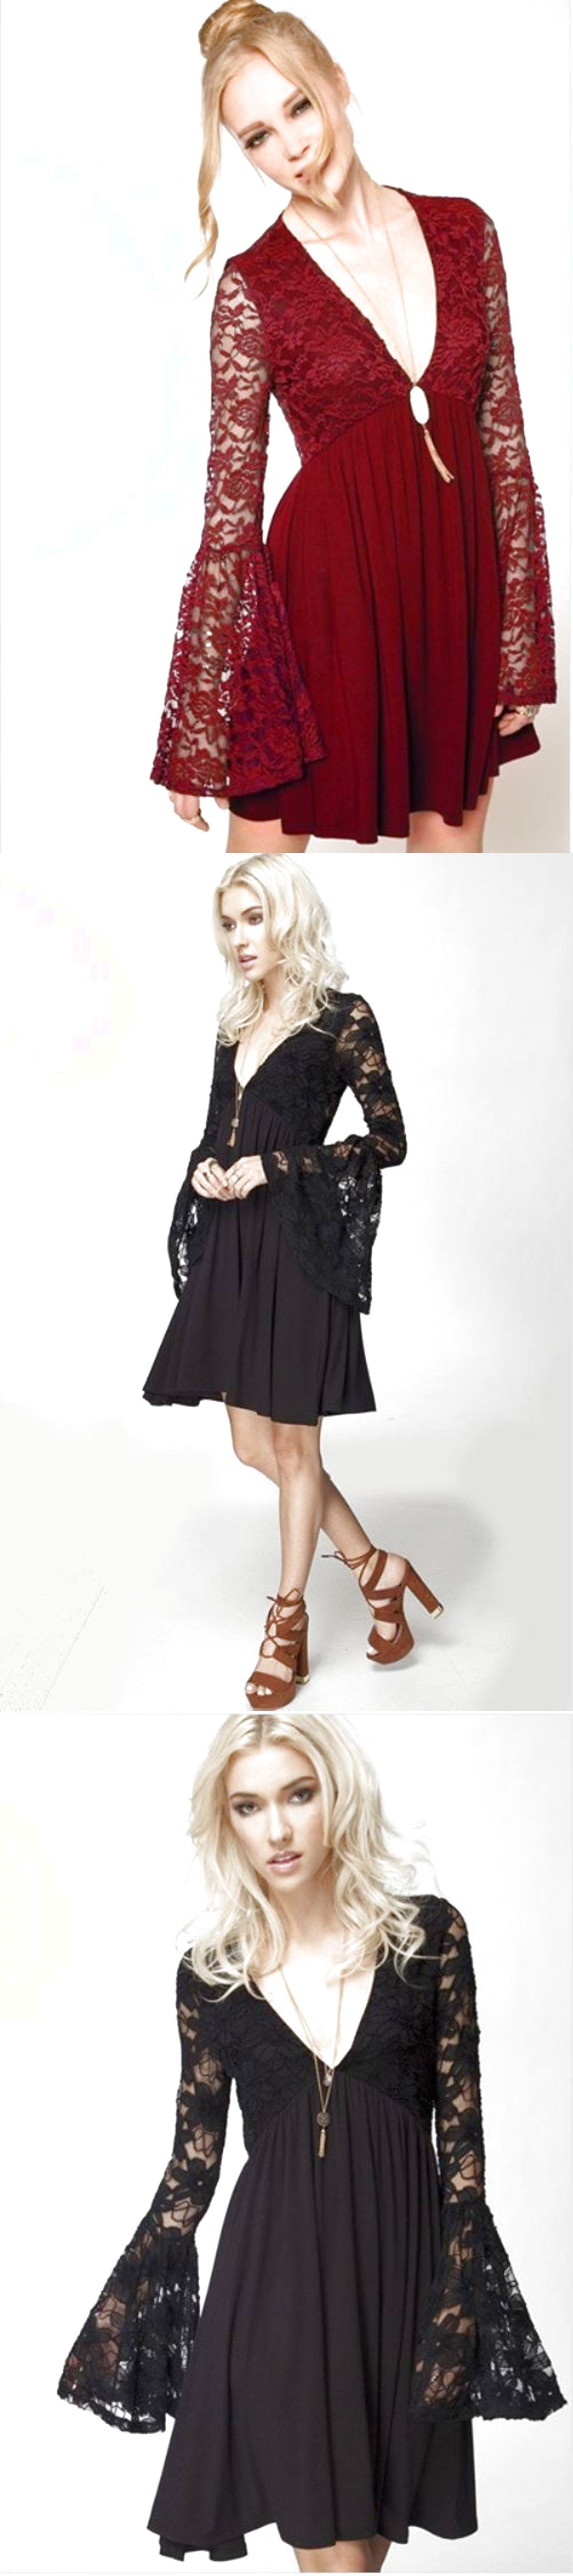 Black lace dress red shoes  Womens New Long Bell Sleeve Solid Black Lace Swing Dress Tunic Boho